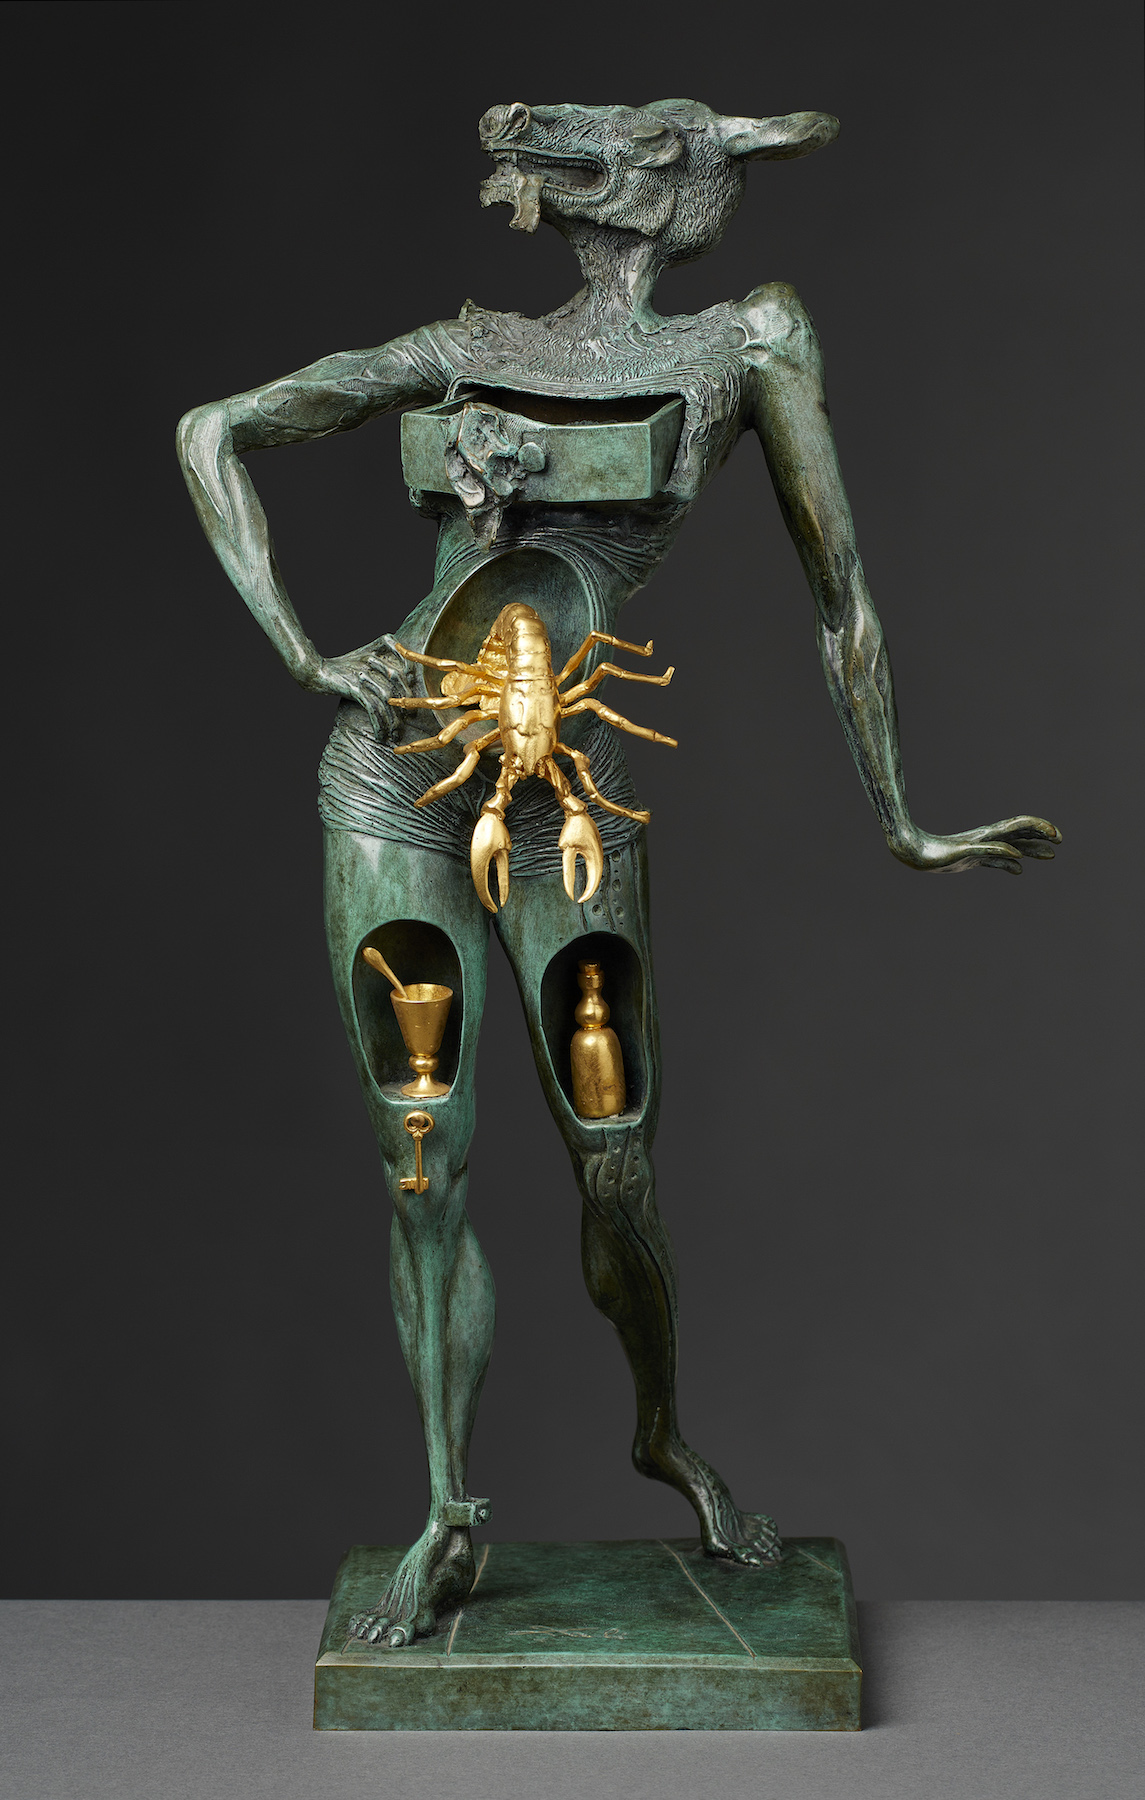 Salvador Dali, Le Minotaure Bronce. Courtesy of A PRIVATE COLLECTION.